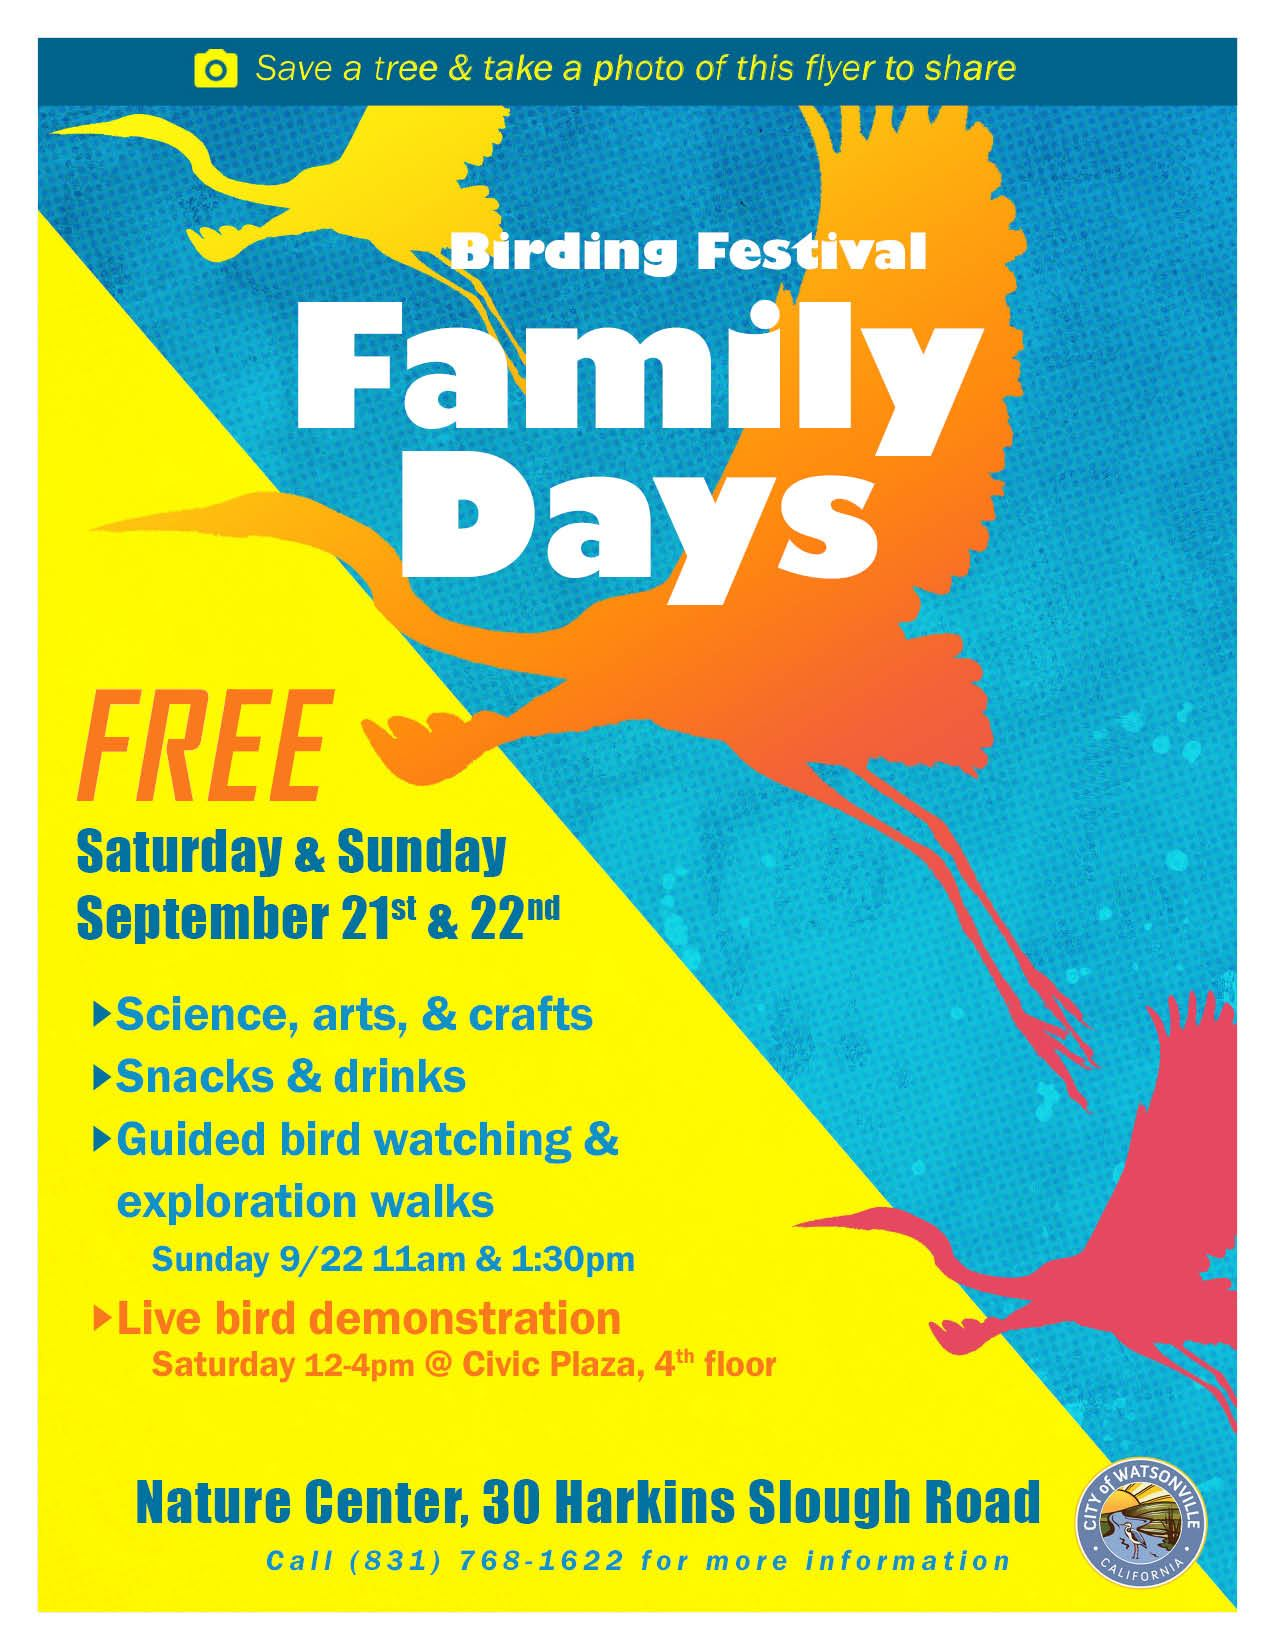 Flier with all information for the Family Days event happening on 9/21 & 9/22